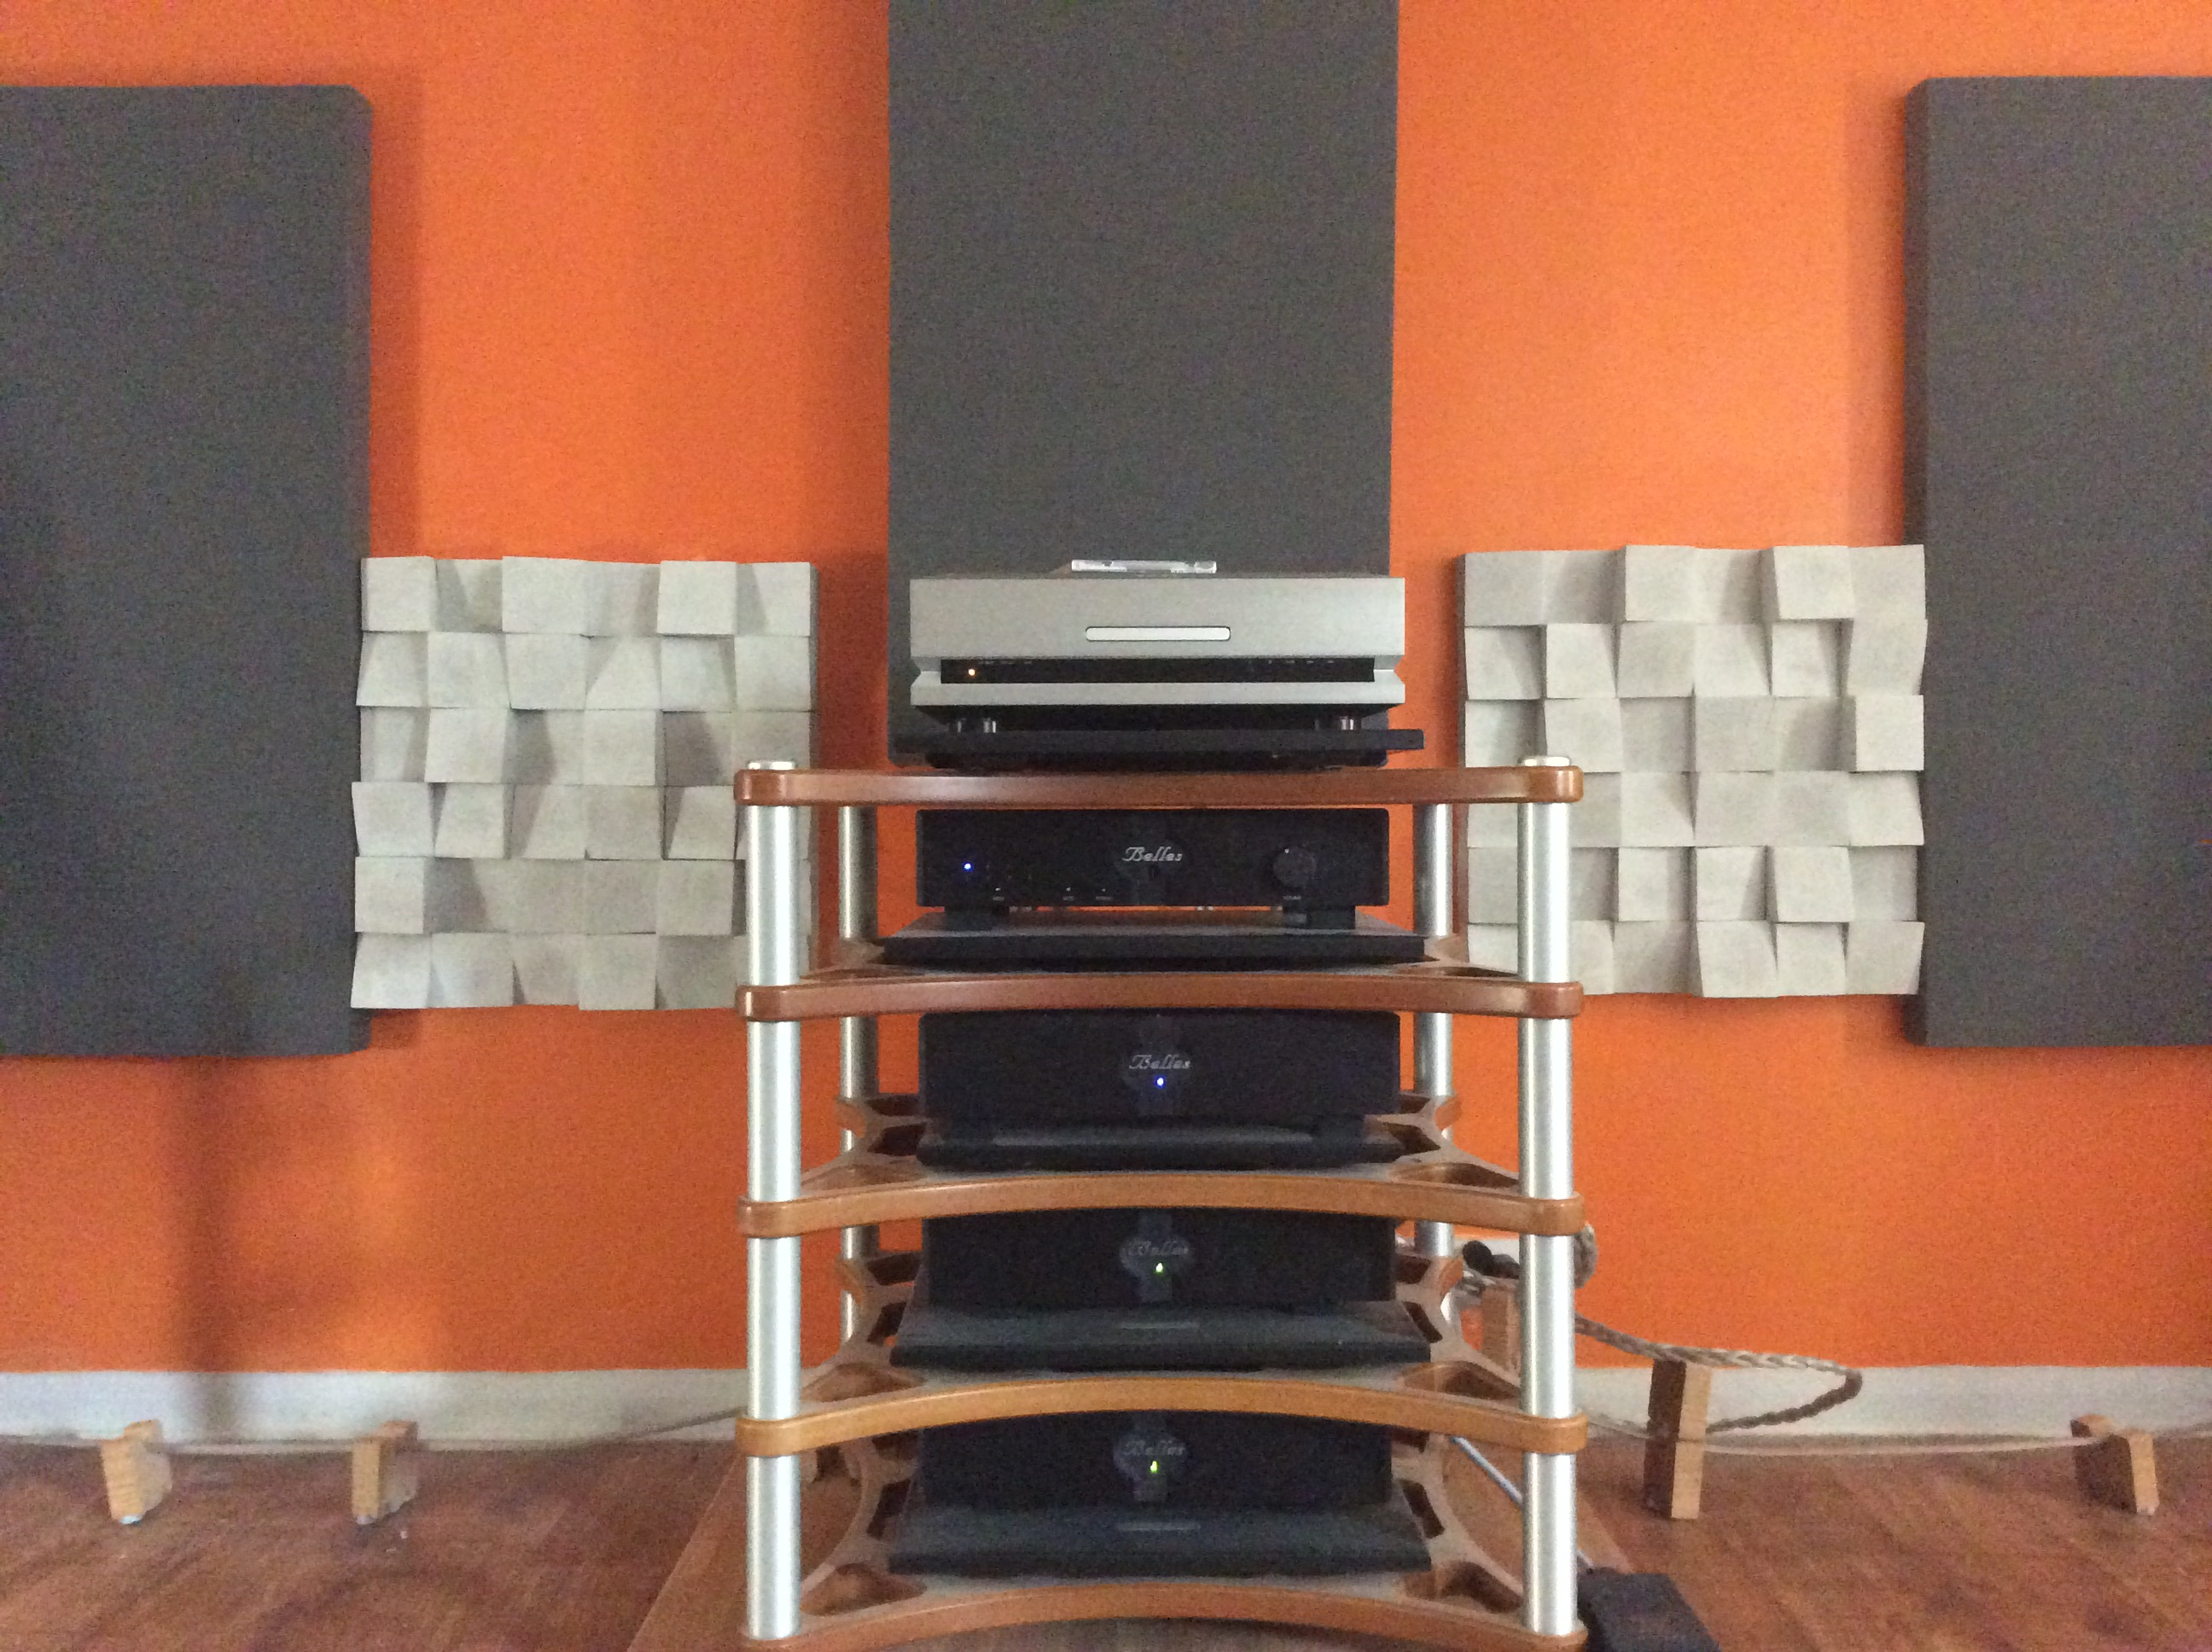 Acoustic effects of the audiophile shrine | Audio Science Review